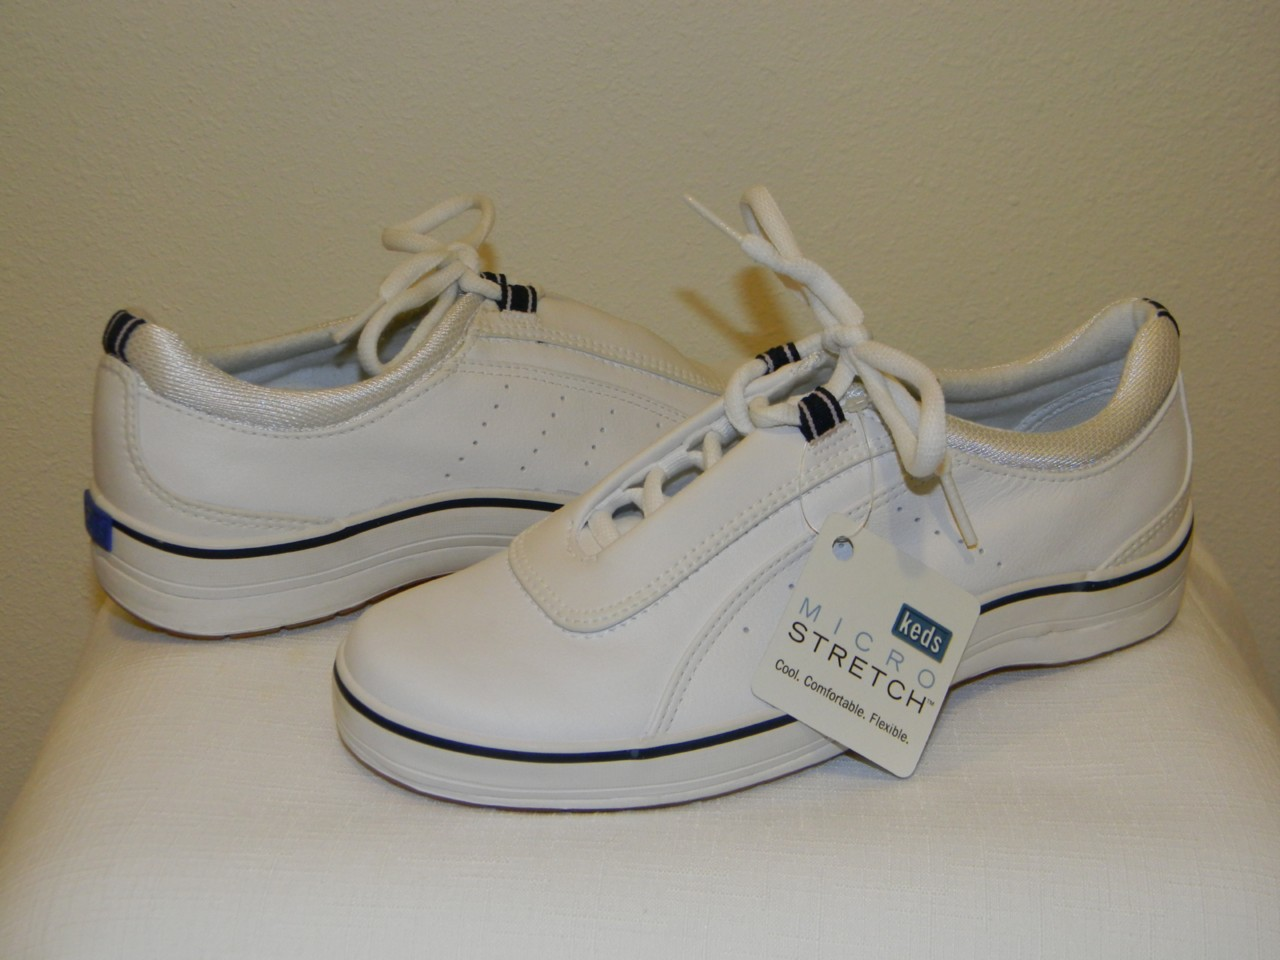 fab new keds quot hollis quot white leather casual lace up tennis